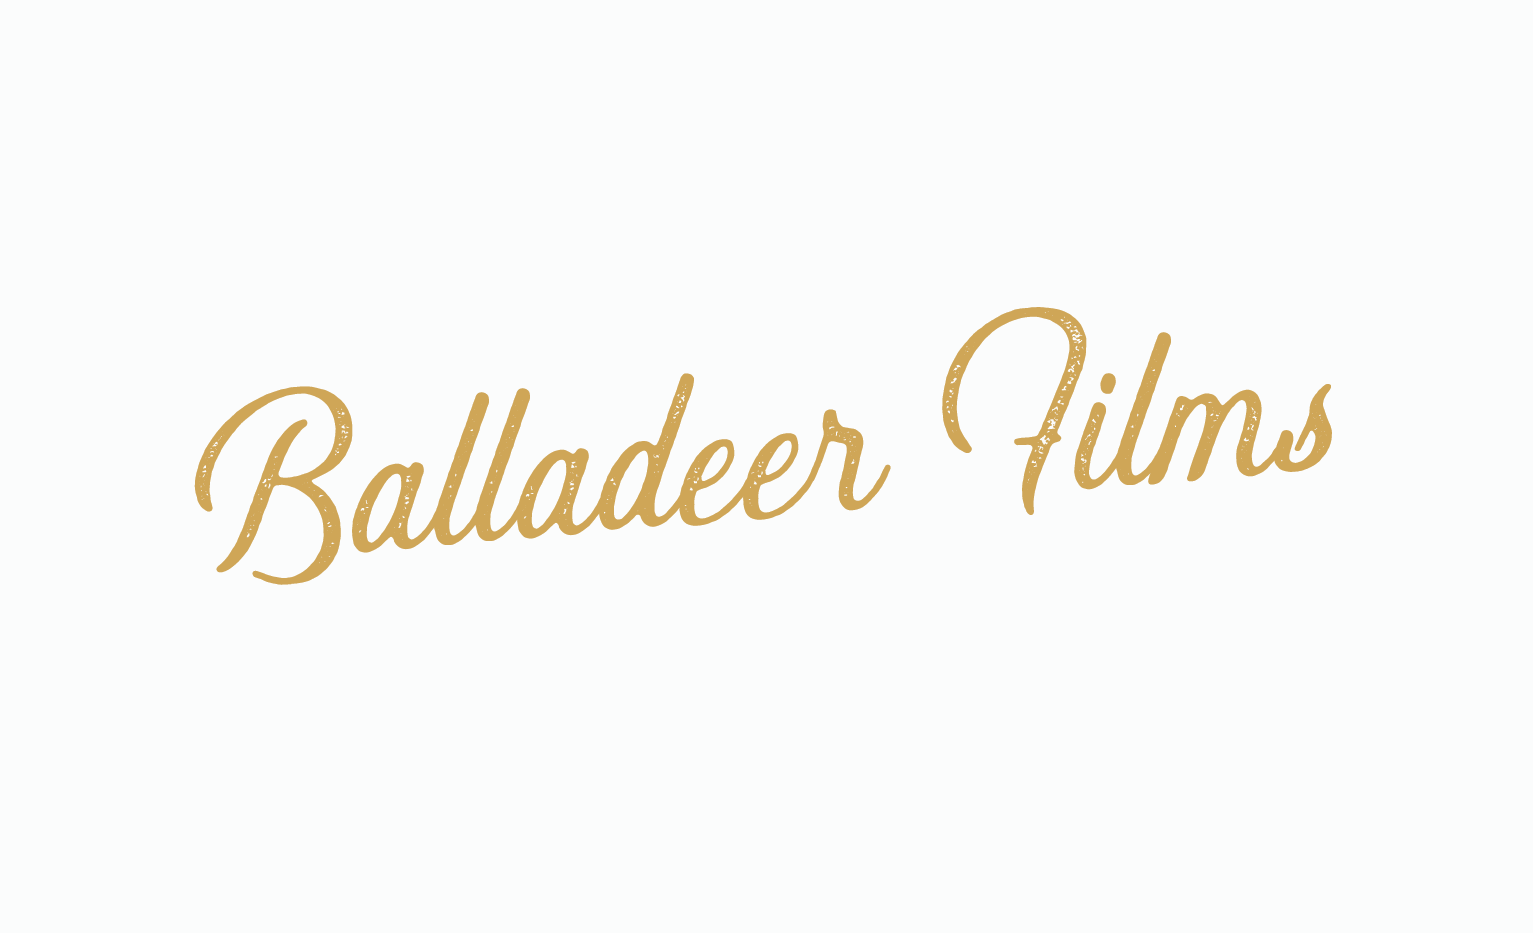 Balladeer Films Primary Logo by Jordan Prindle | Designs